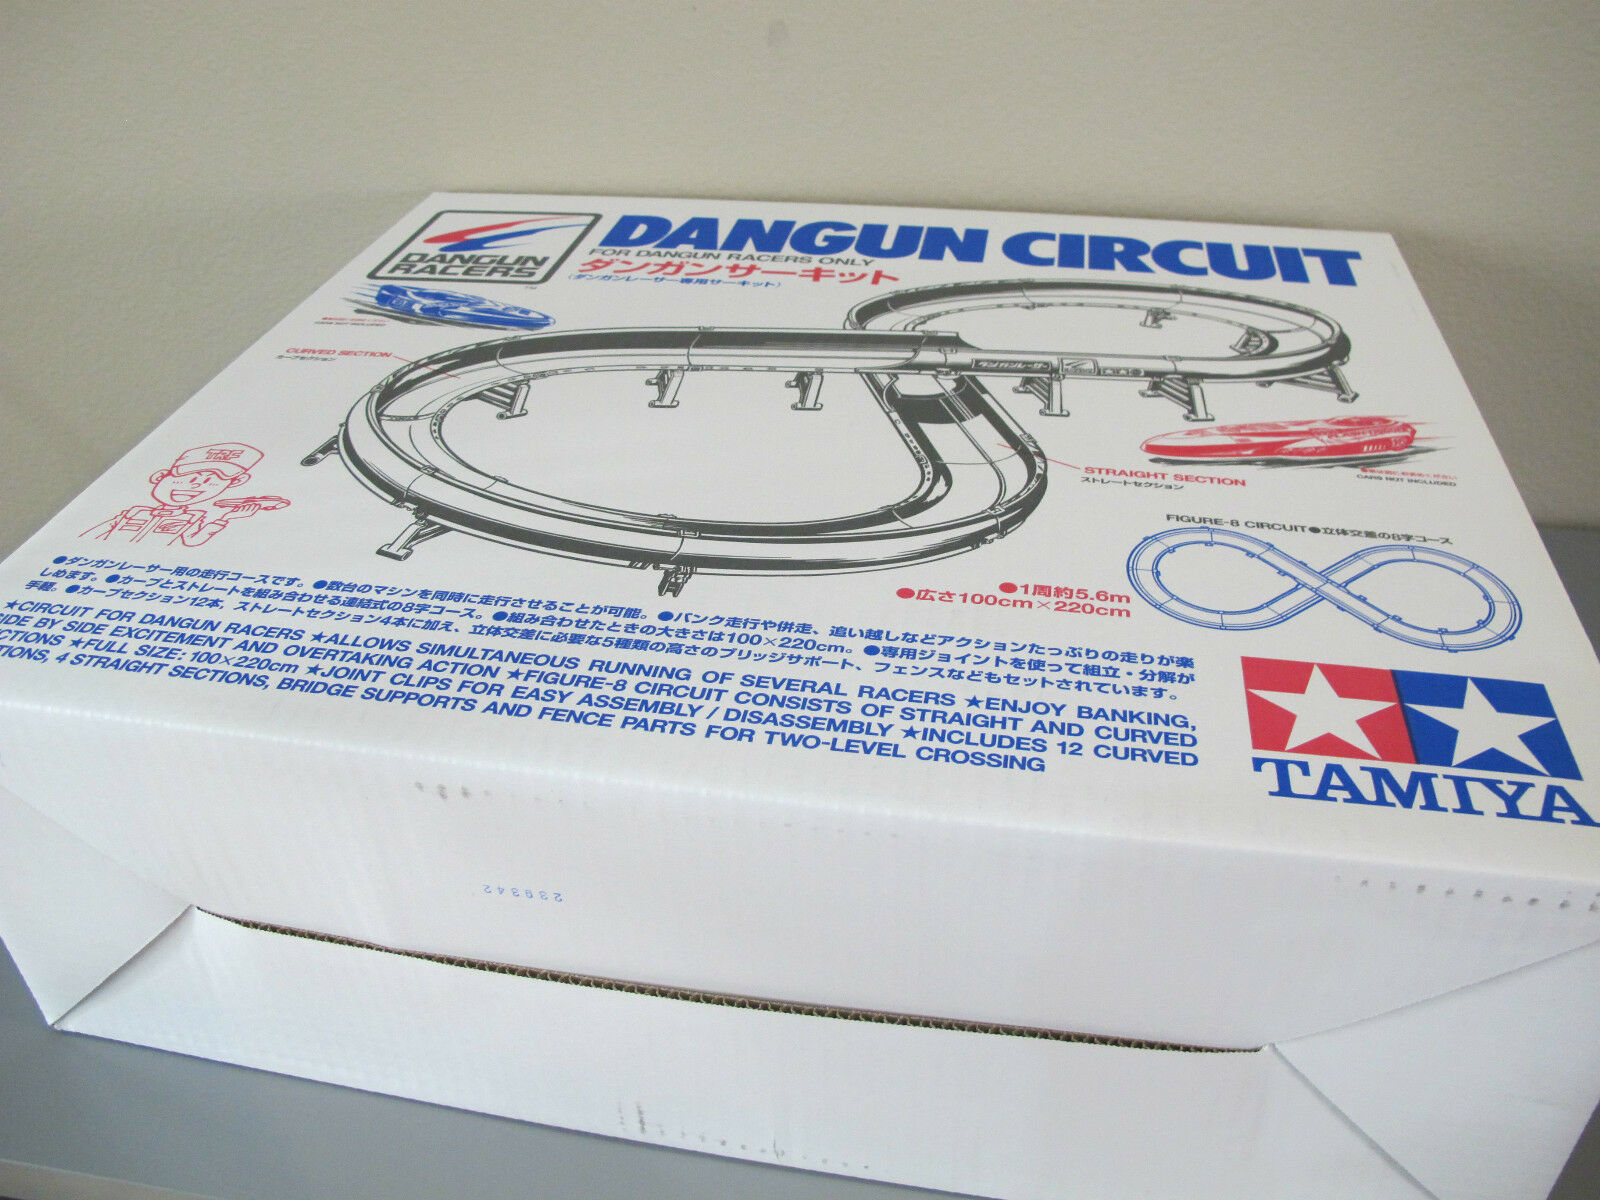 New in Box Tamiya Dangun Tunnel Racers mini 4WD 2WD series Circuit Race Track